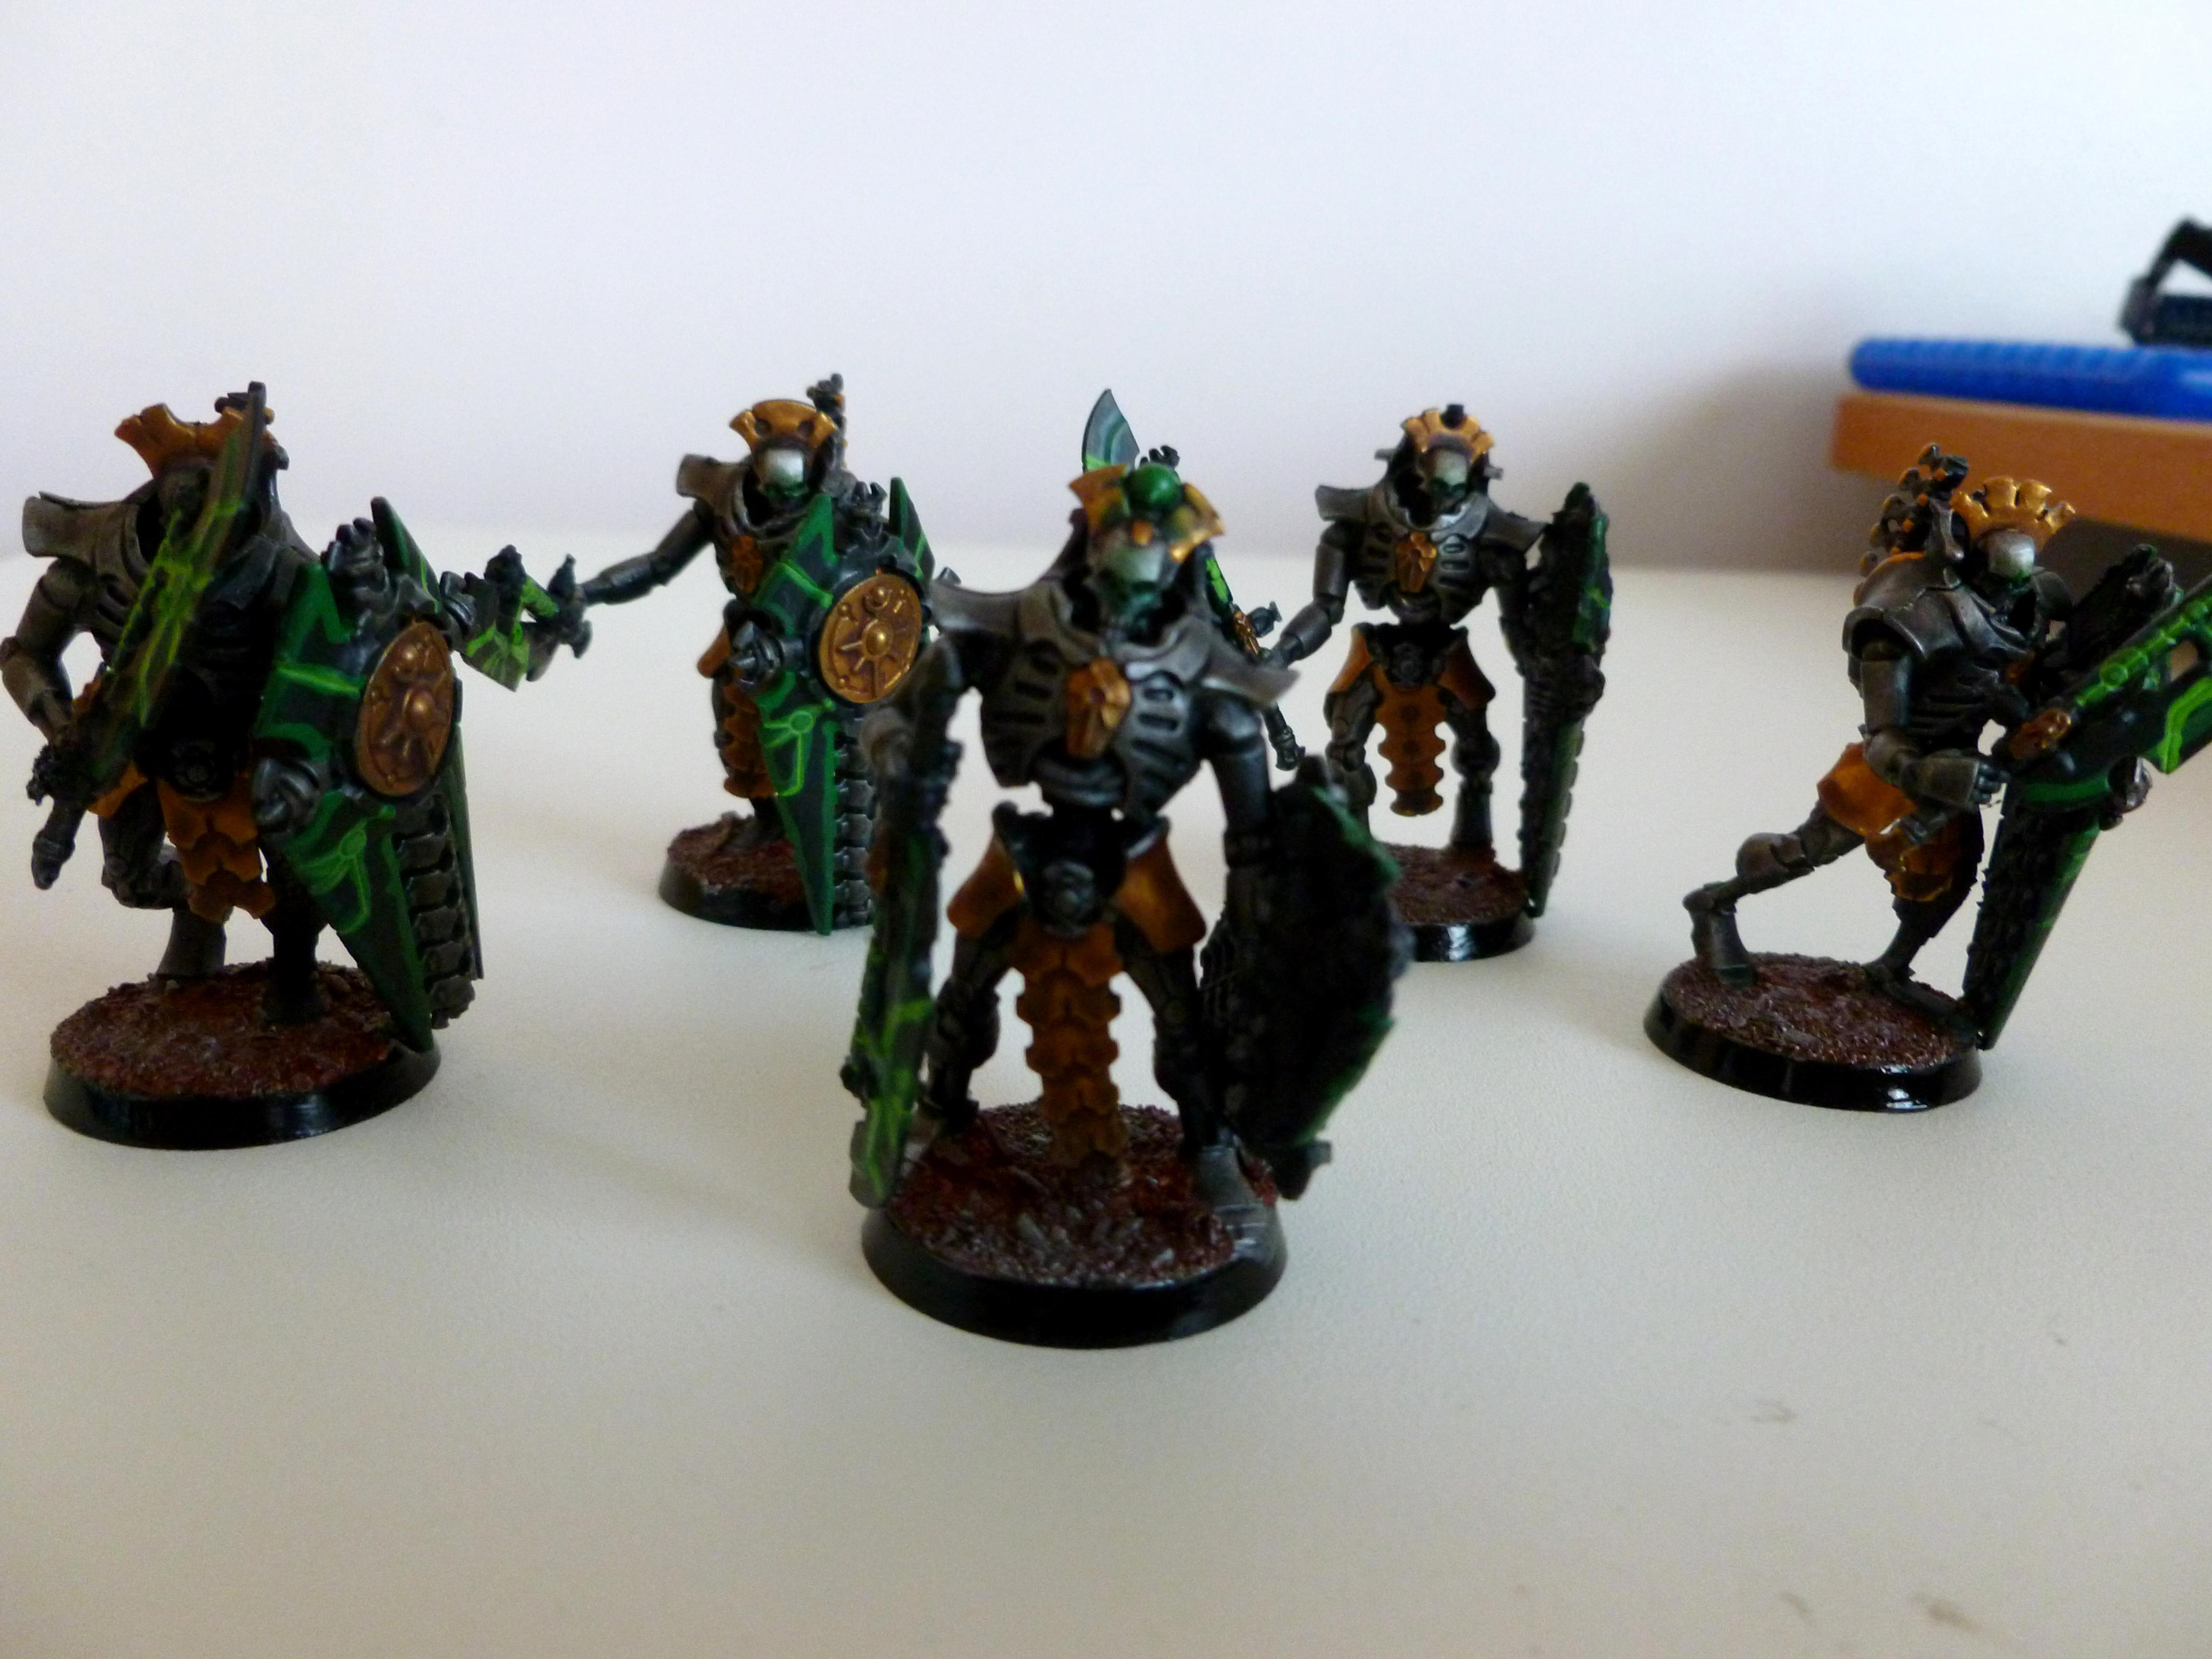 Base, Black, Cool, Disspersion Shild, Evil, Gauss, Gold, Green, Hyperphase Woerds, Lychgaurd, Metal, Necrons, Red, Shilds